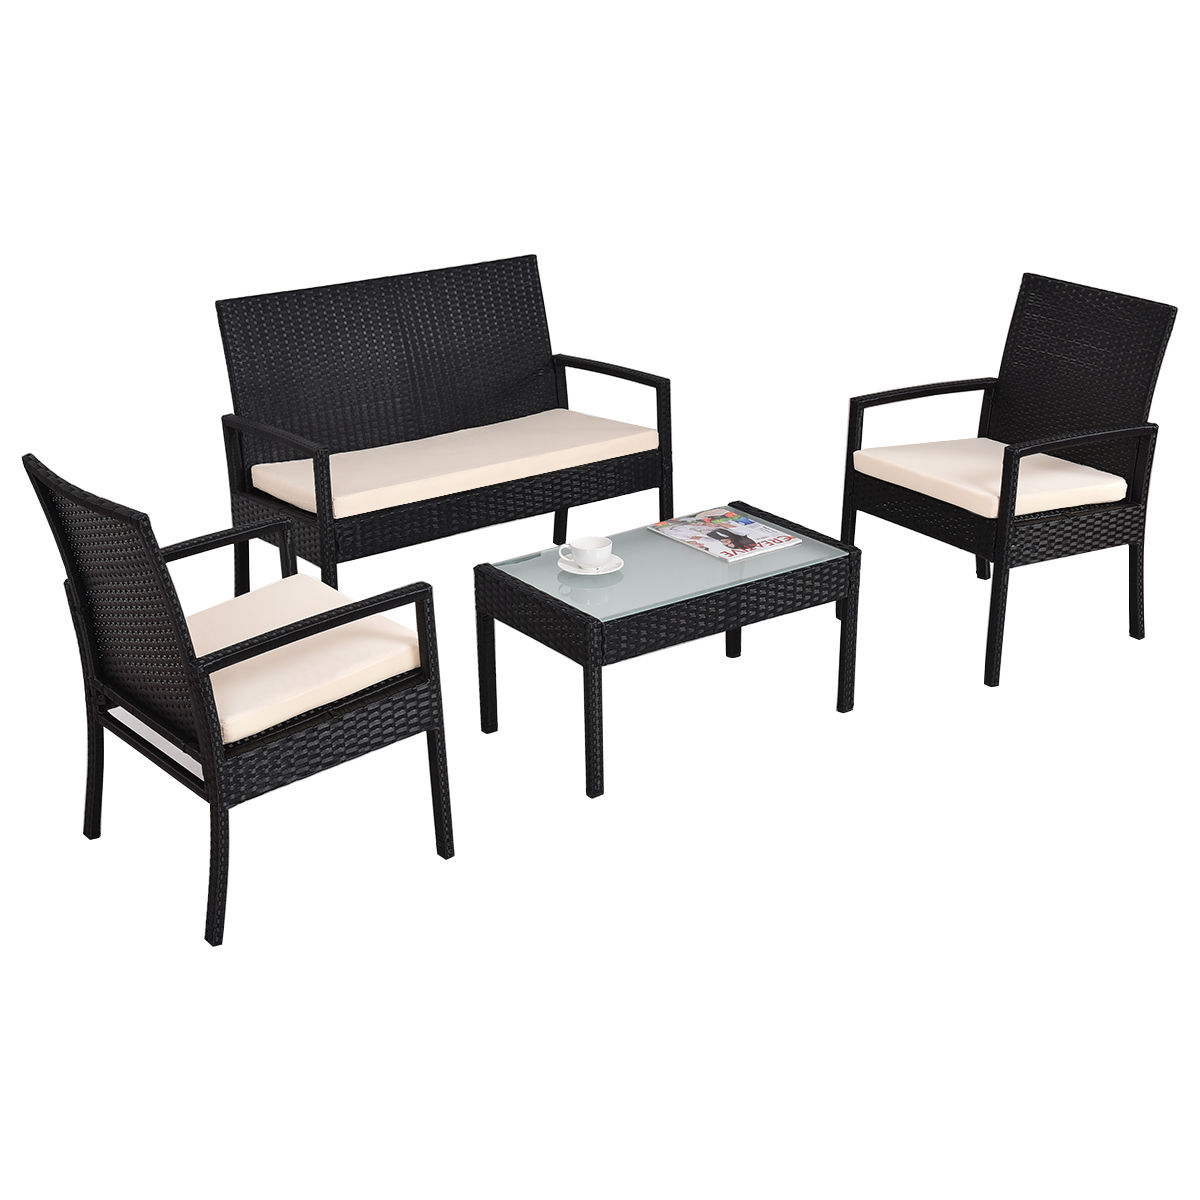 Costway 4 PCS Outdoor Patio Furniture Set Table Chair Sofa Cushioned Seat Garden by Patio Sets